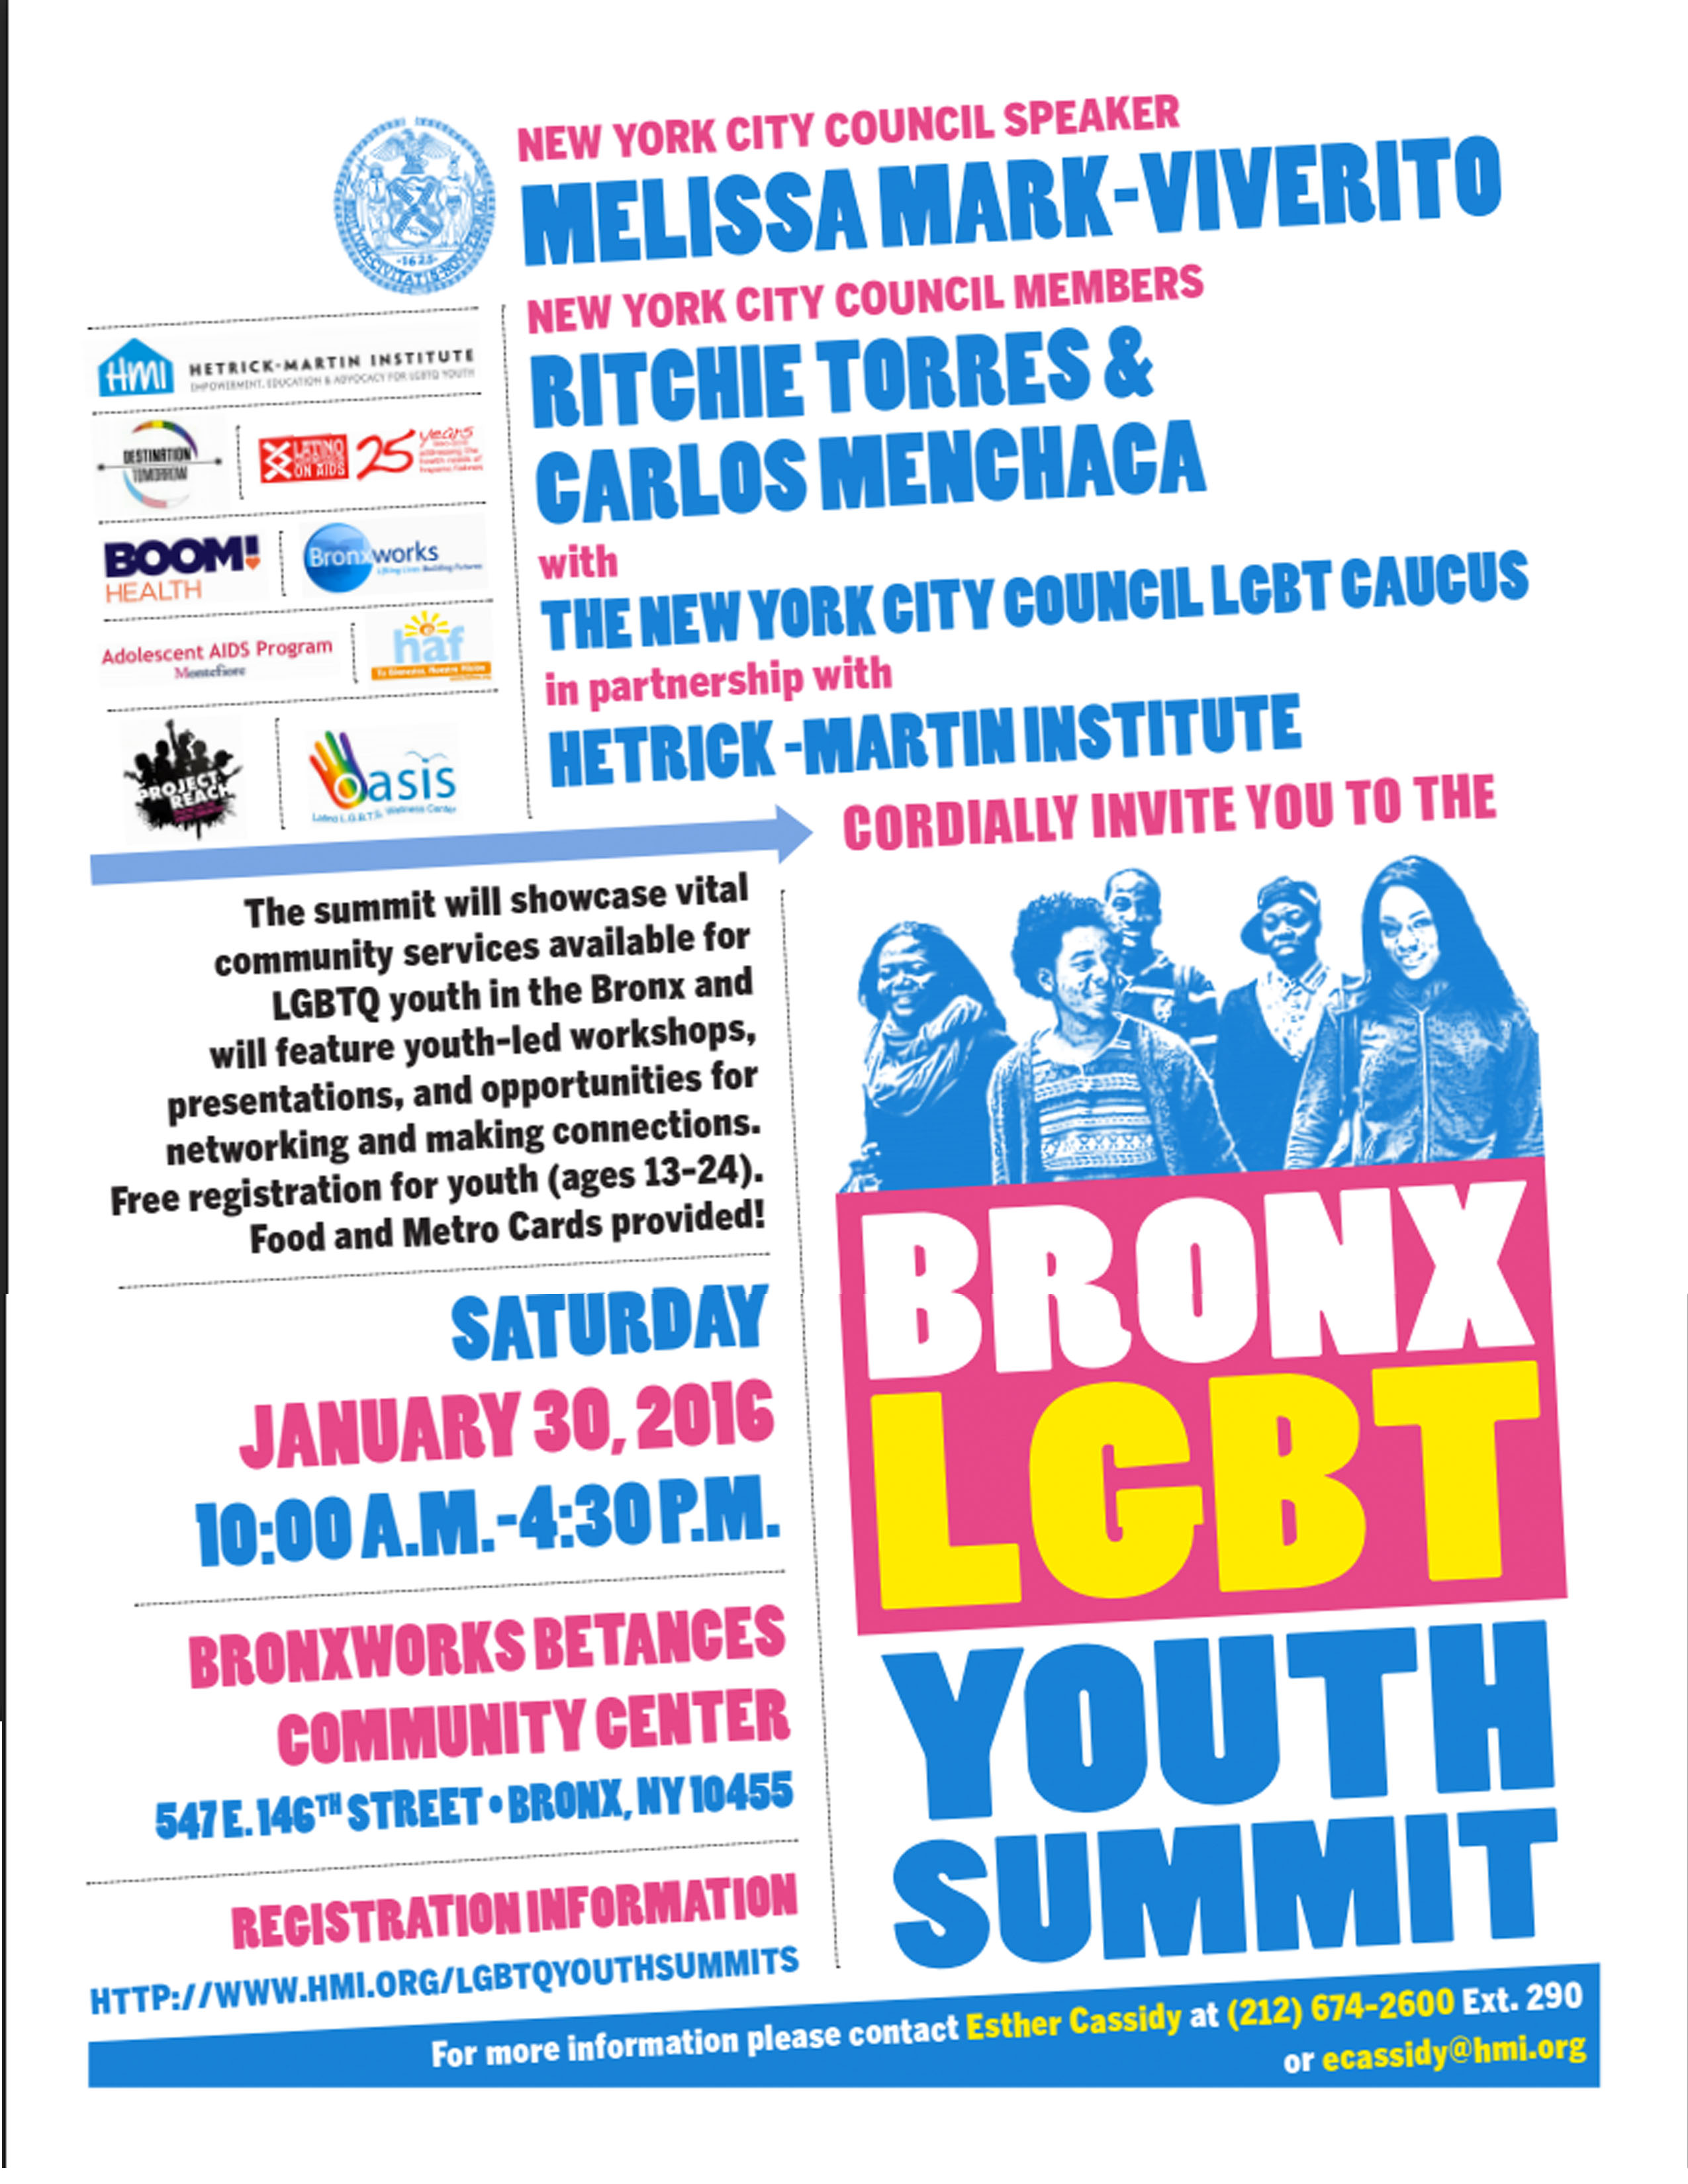 Tomorrow, Saturday Jan 30th: Bronx LBGT Youth Summit ...